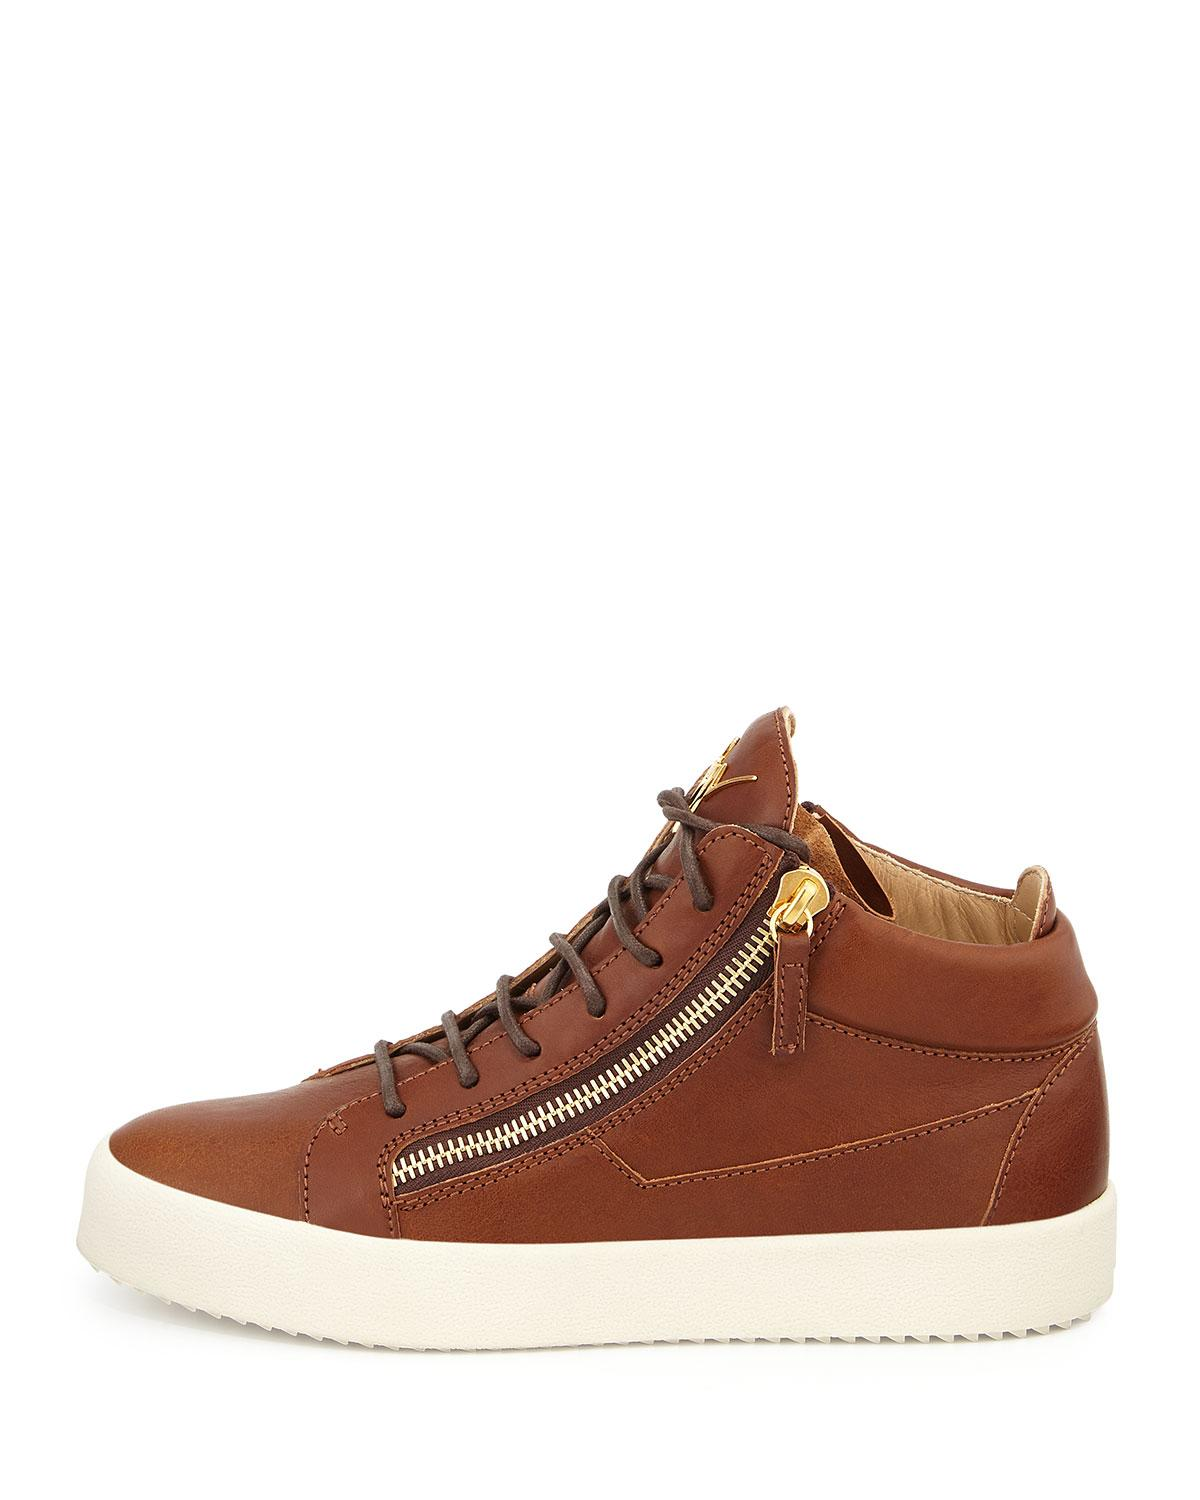 1017 Best Mid Century Architecture A Go Go Images On: Giuseppe Zanotti Men's Leather Mid-top Sneaker In Red For